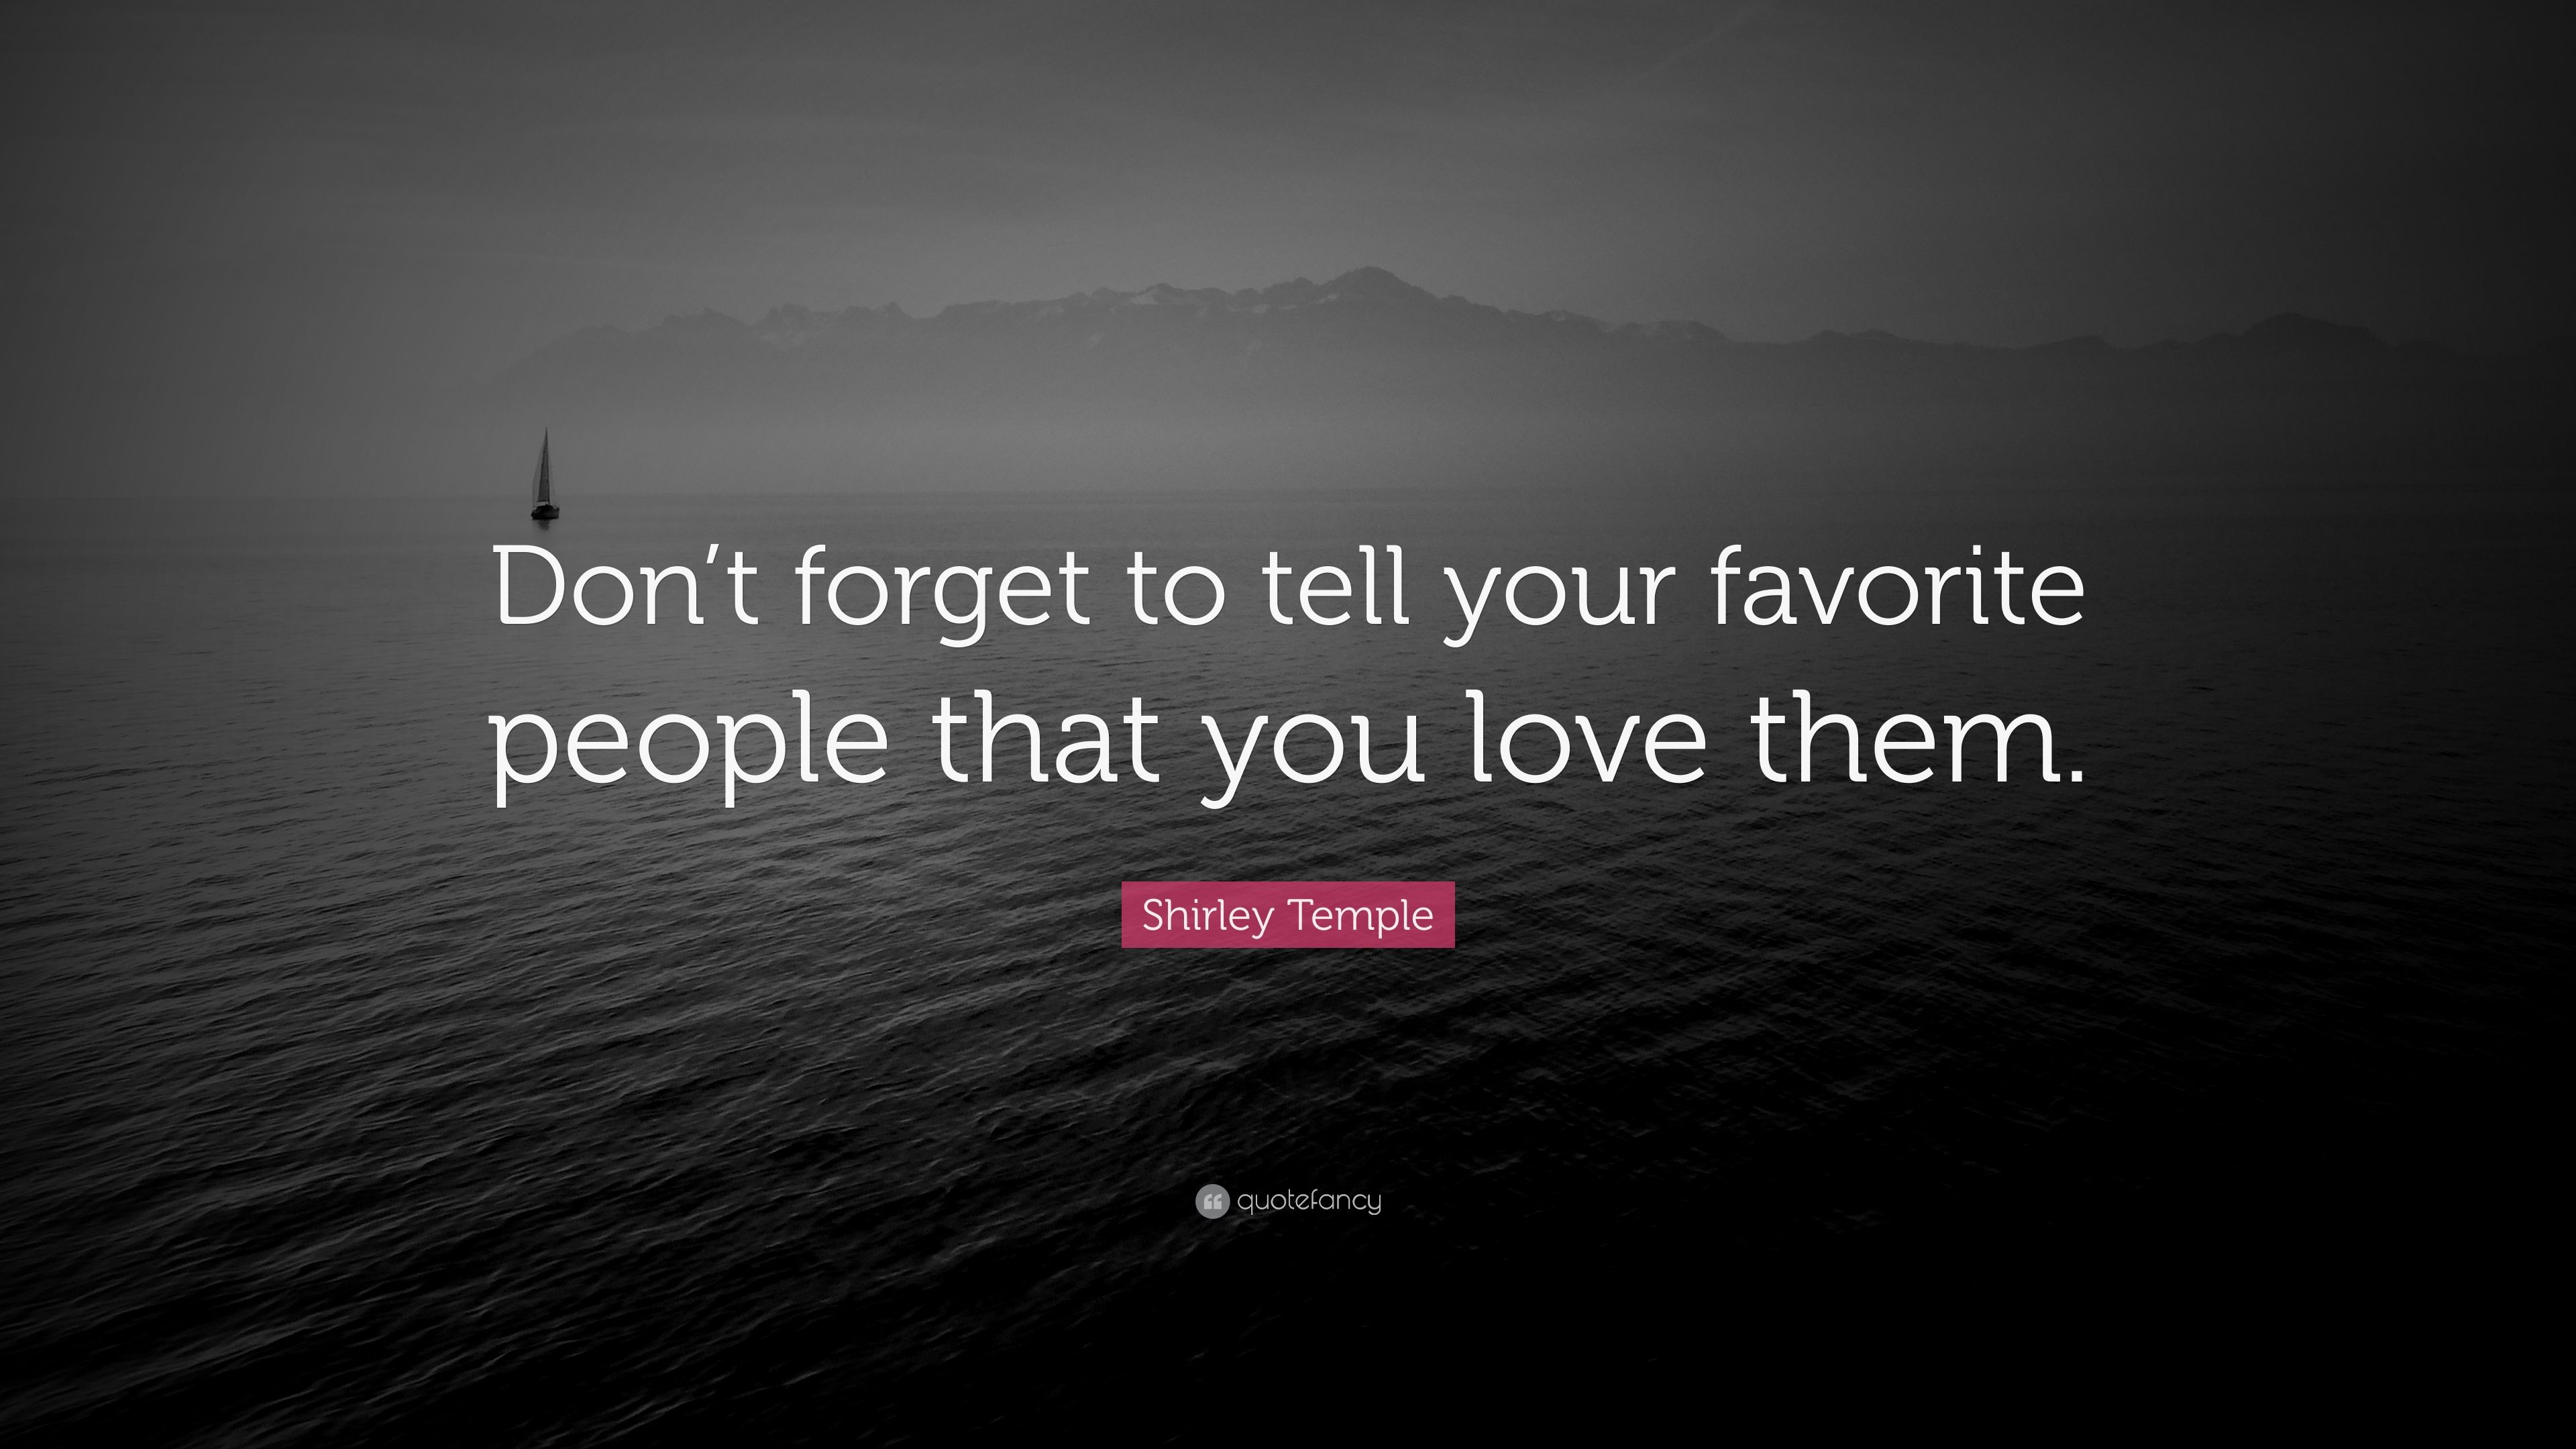 Shirley Temple Quote: Dont forget to tell your favorite